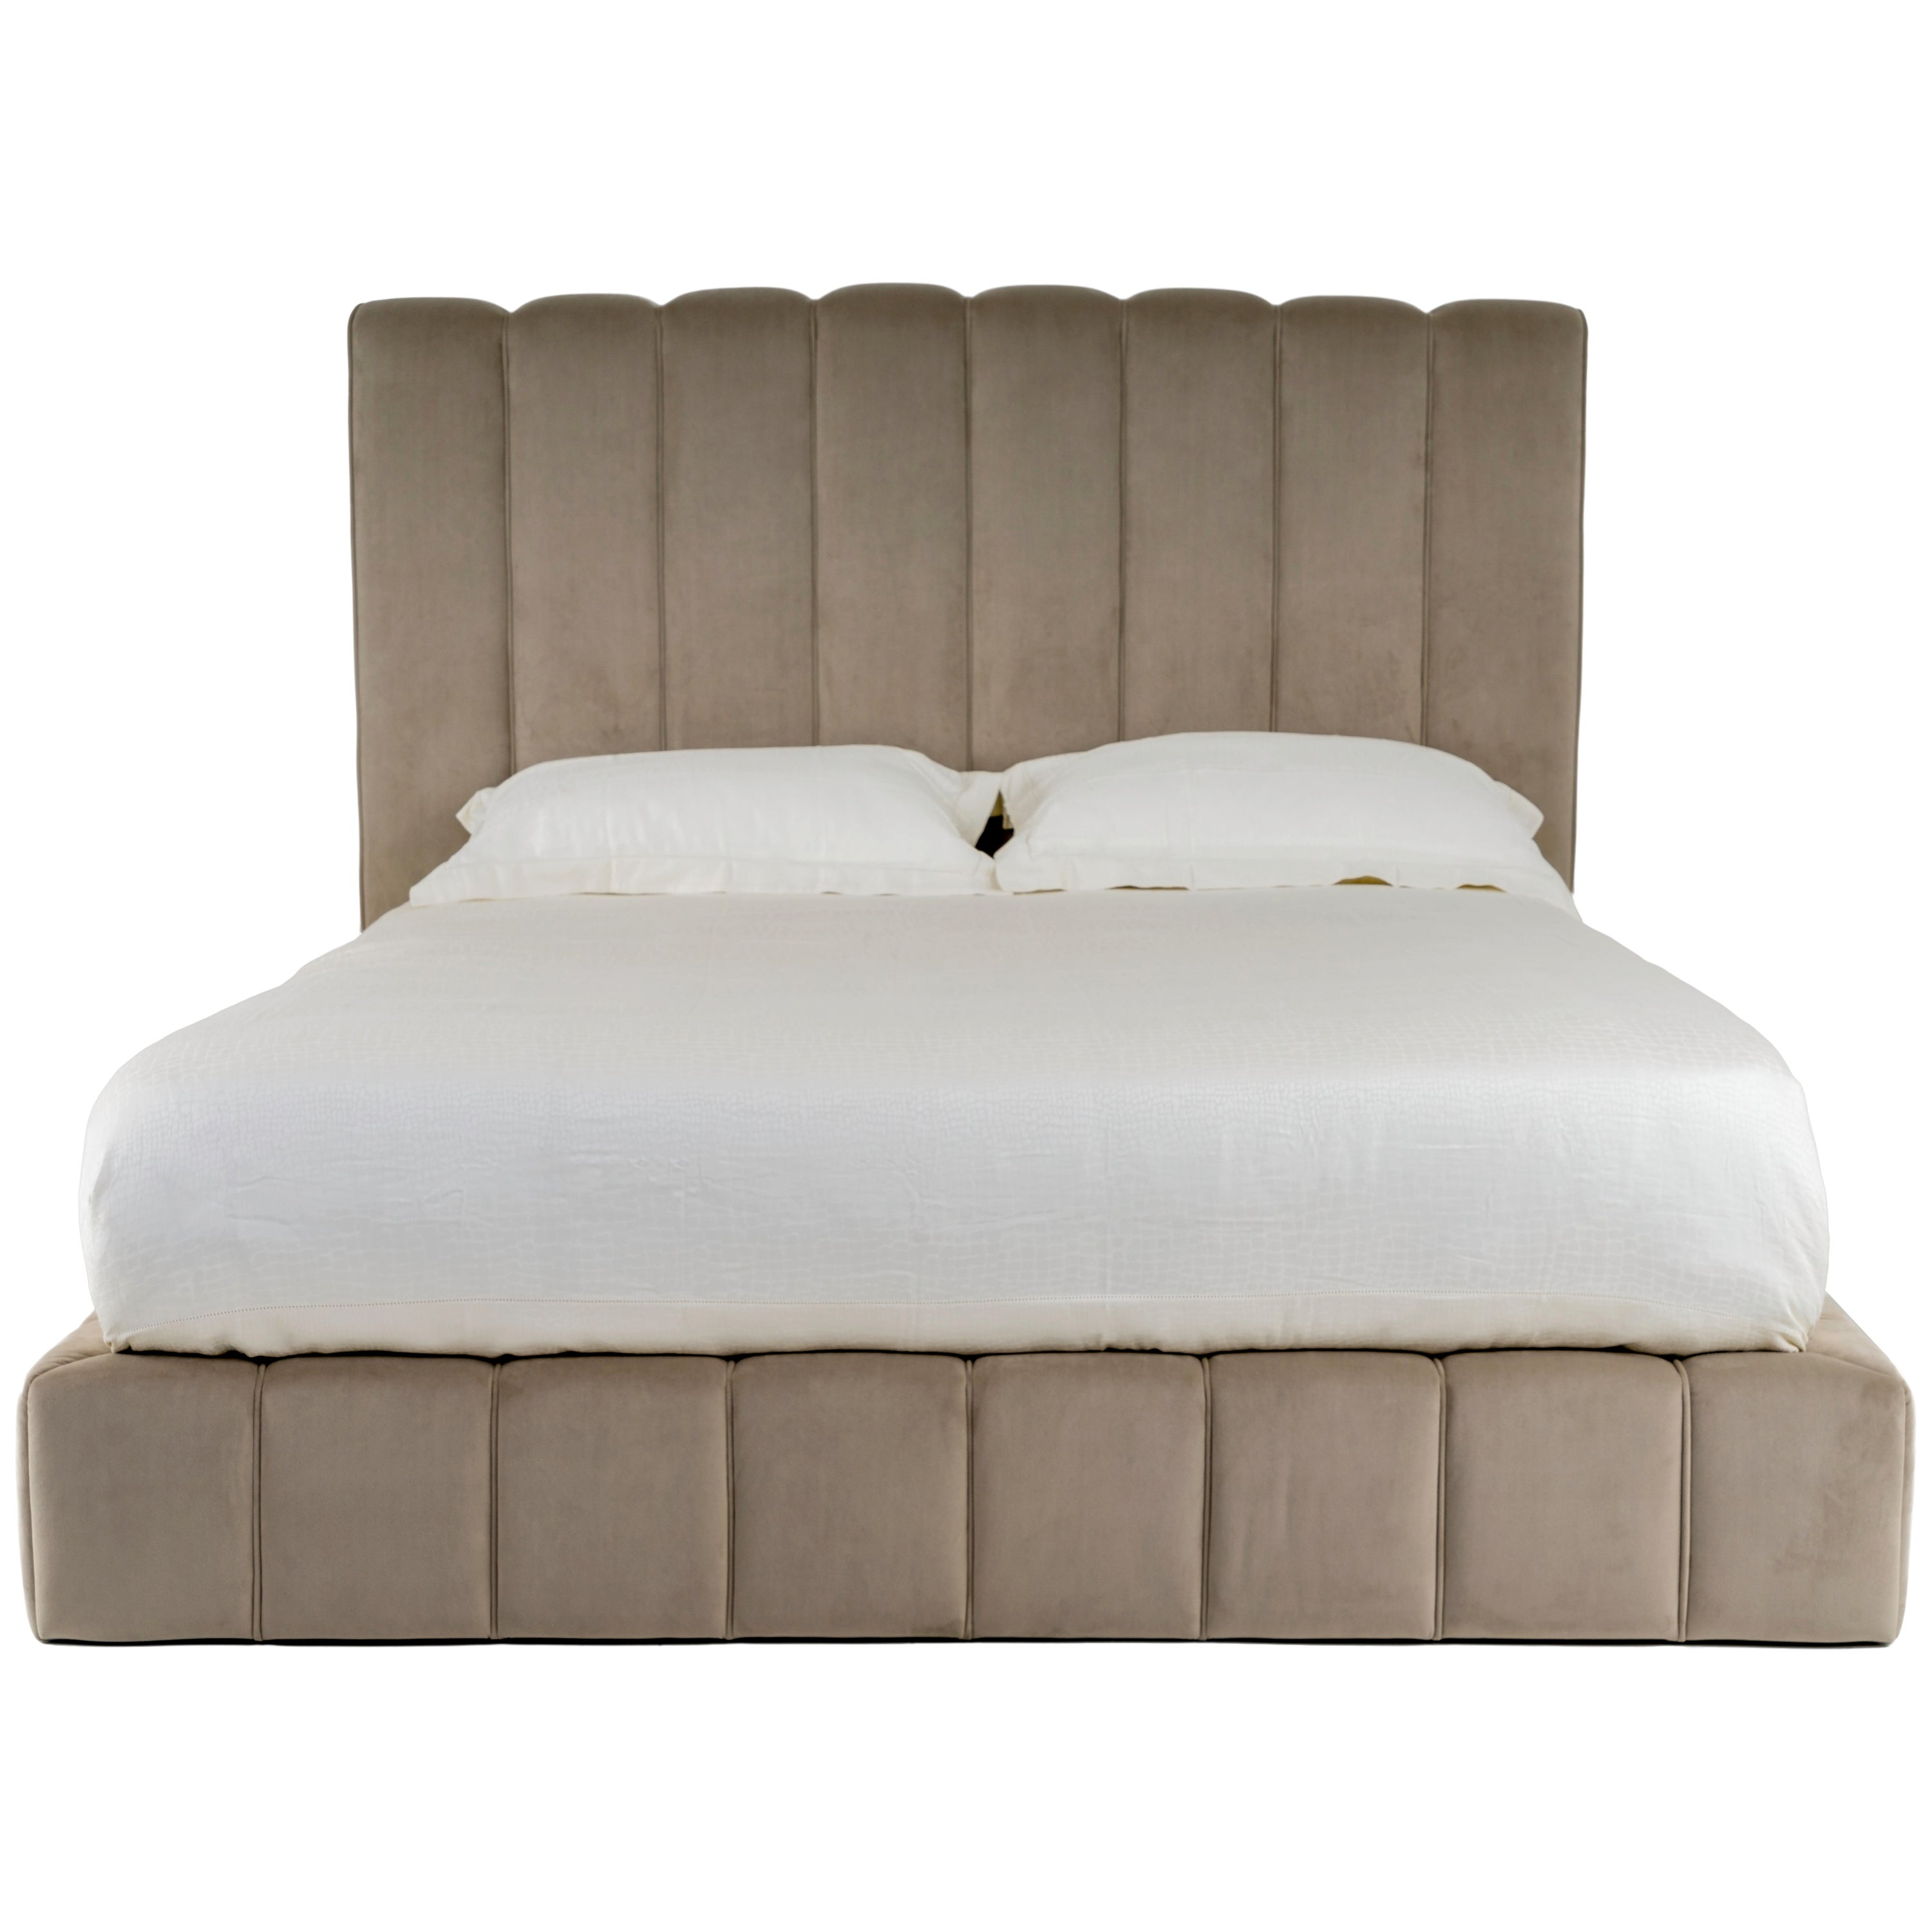 Brisa Bed with Upholstered Headboard and Base